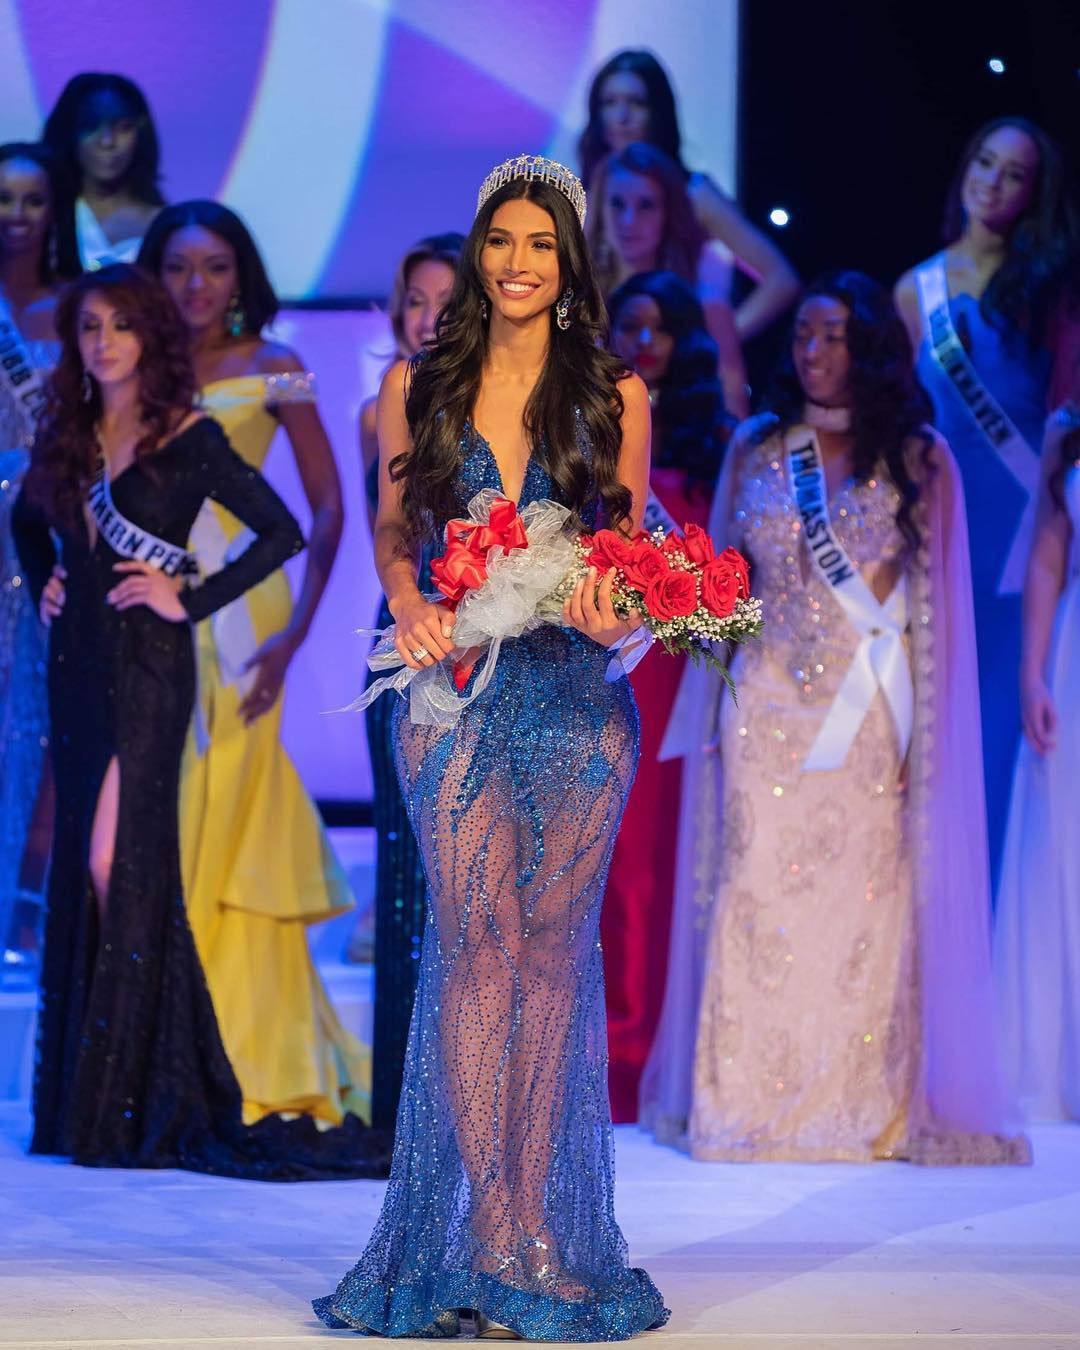 marianny egurrola, top 20 de miss intercontinental 2018-2019. - Página 2 76pwva10